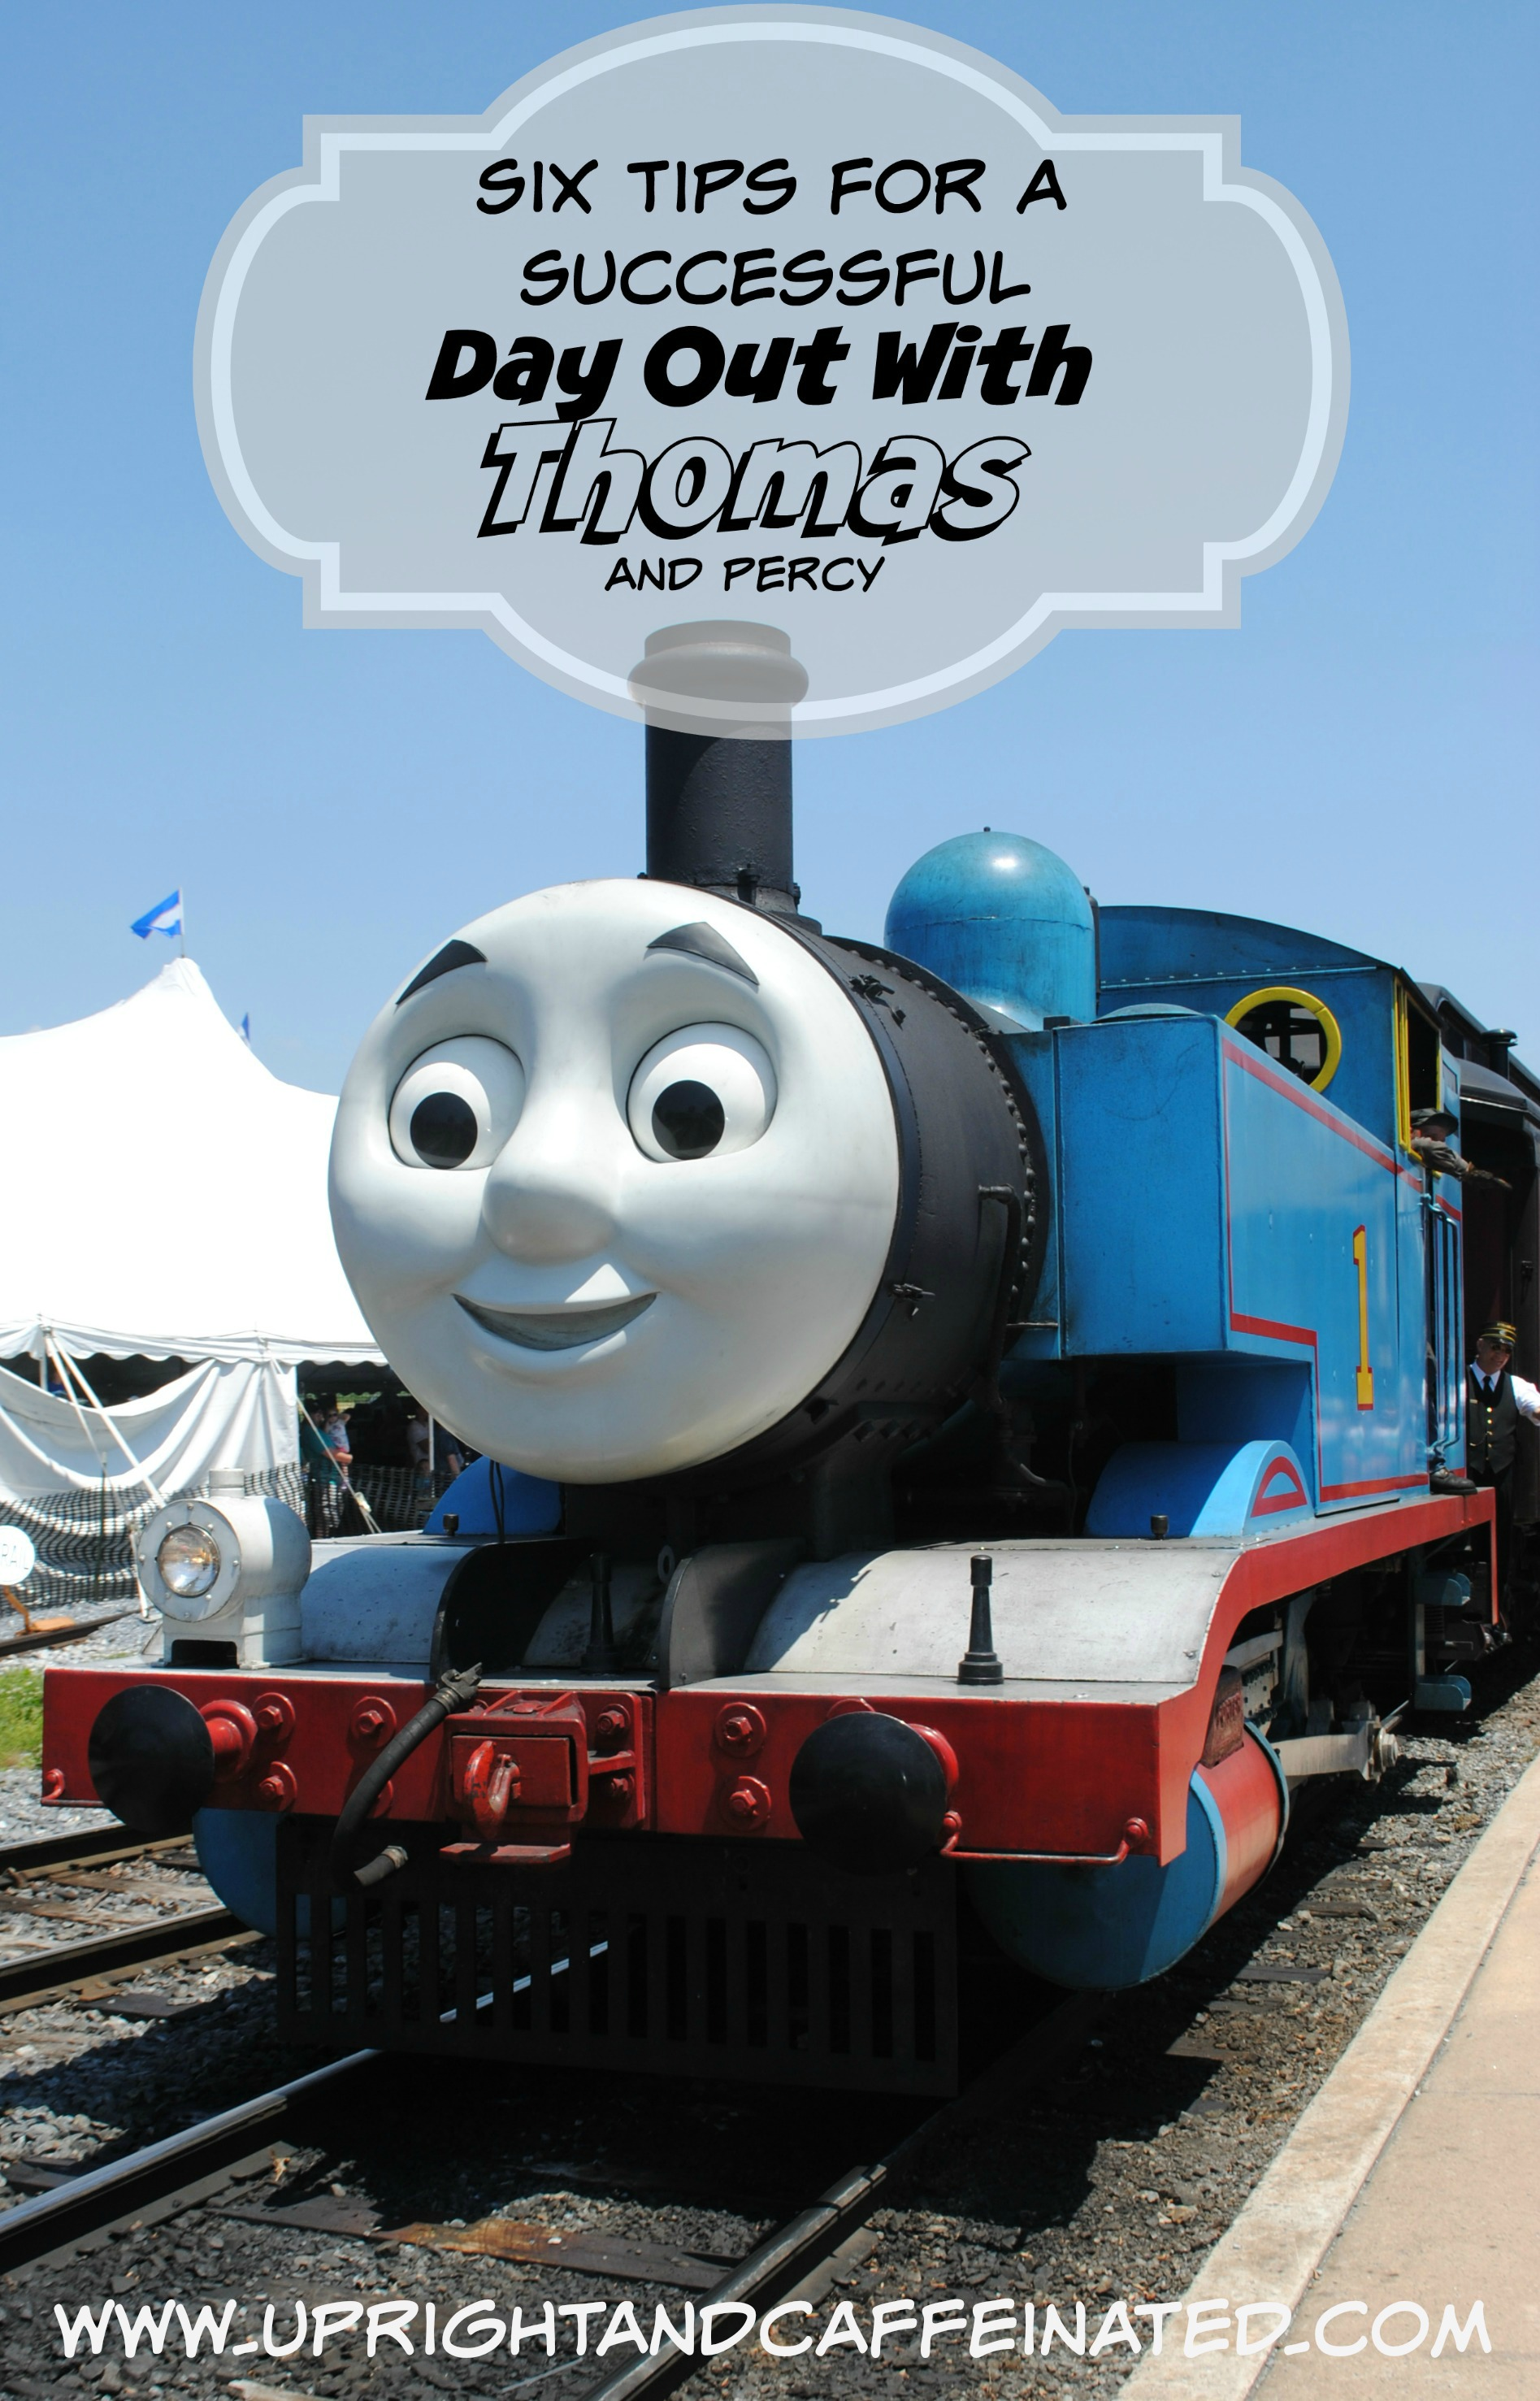 Day Out With Thomas: 6 Tips For A Successful Day